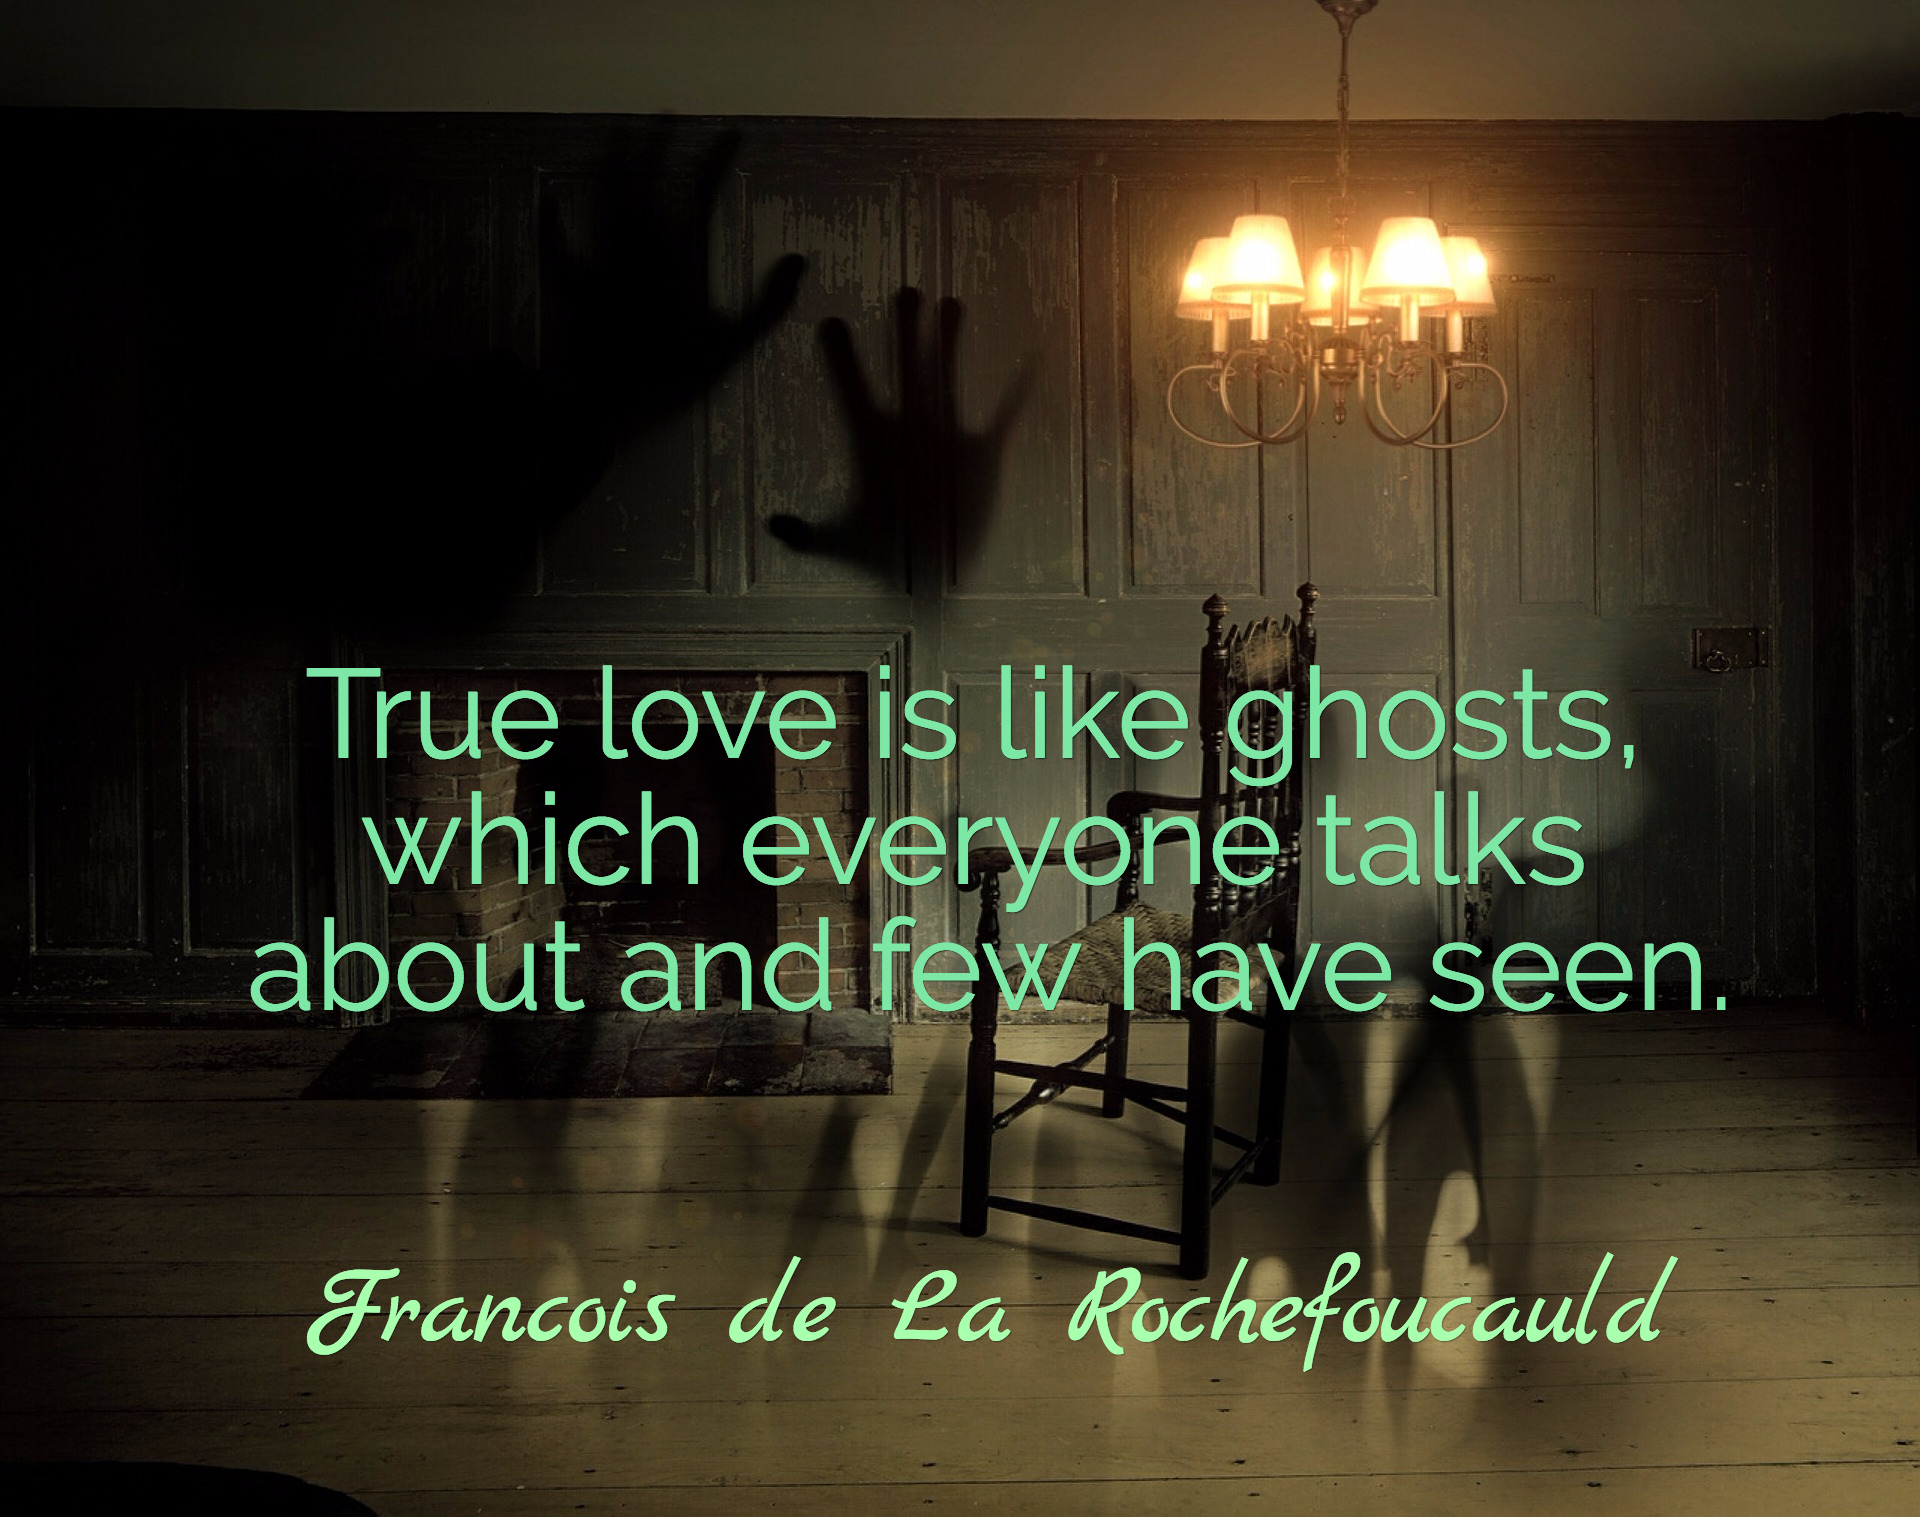 Quotes About True Love True Love Is Like Ghosts Which Everyonepicture Quotes 1771